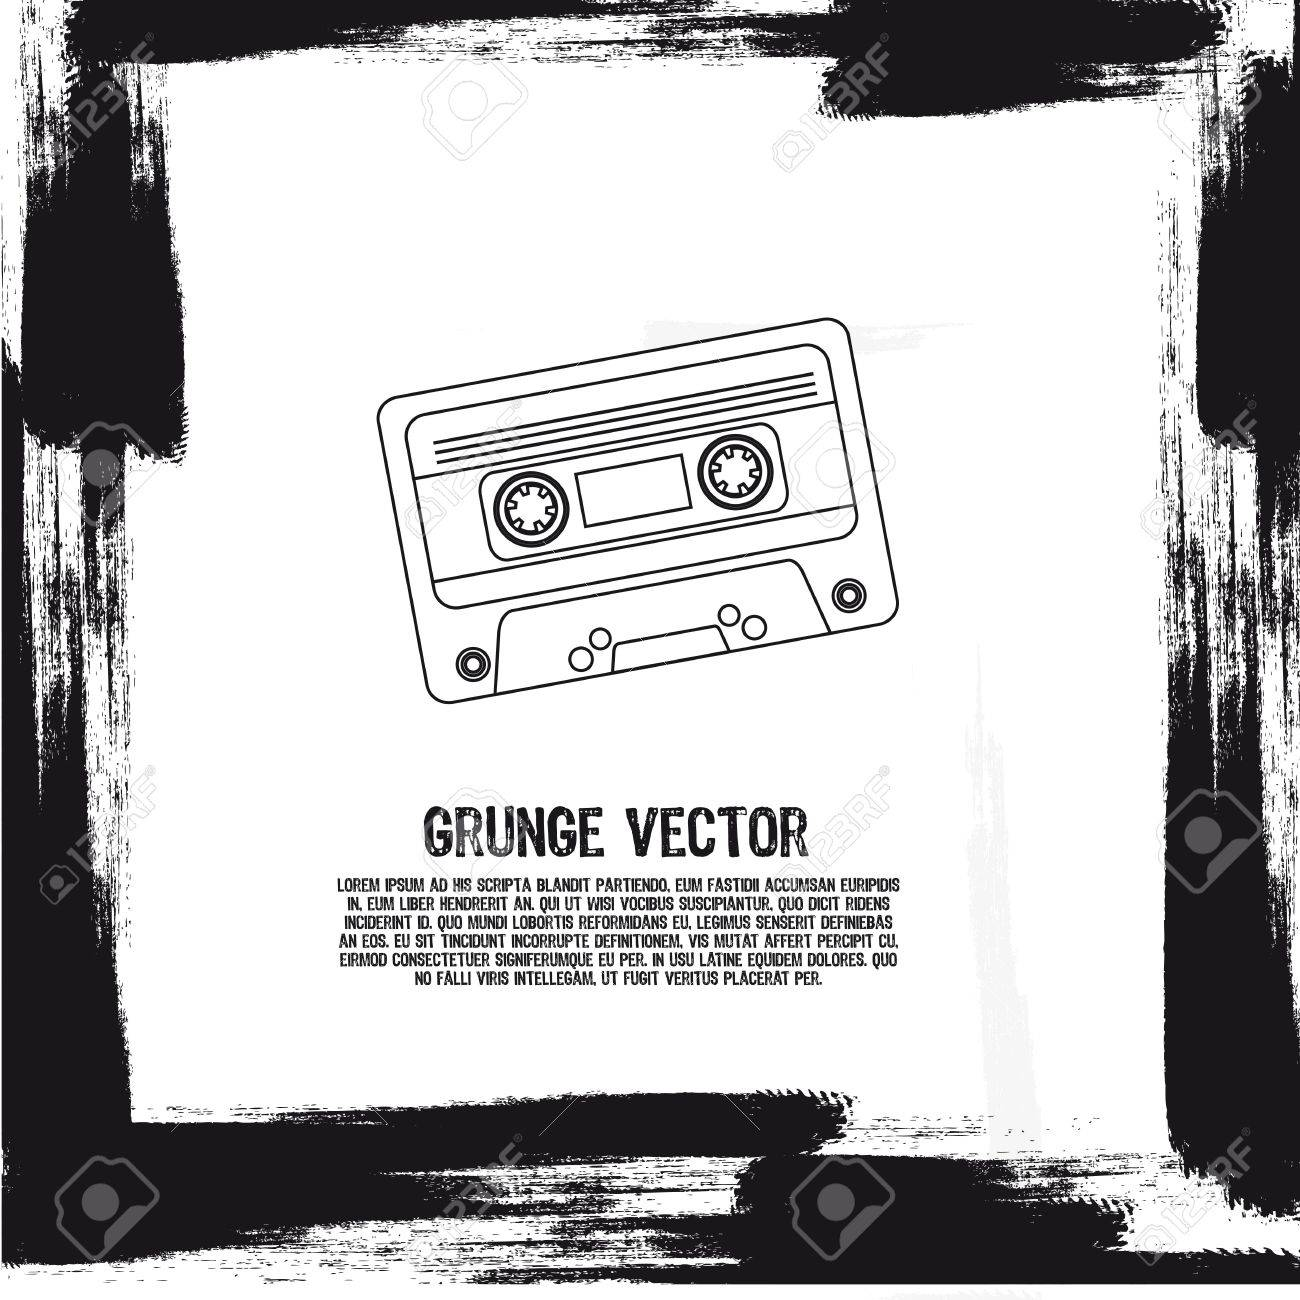 grunge silhouette cassette background. illustration Stock Vector - 12493130